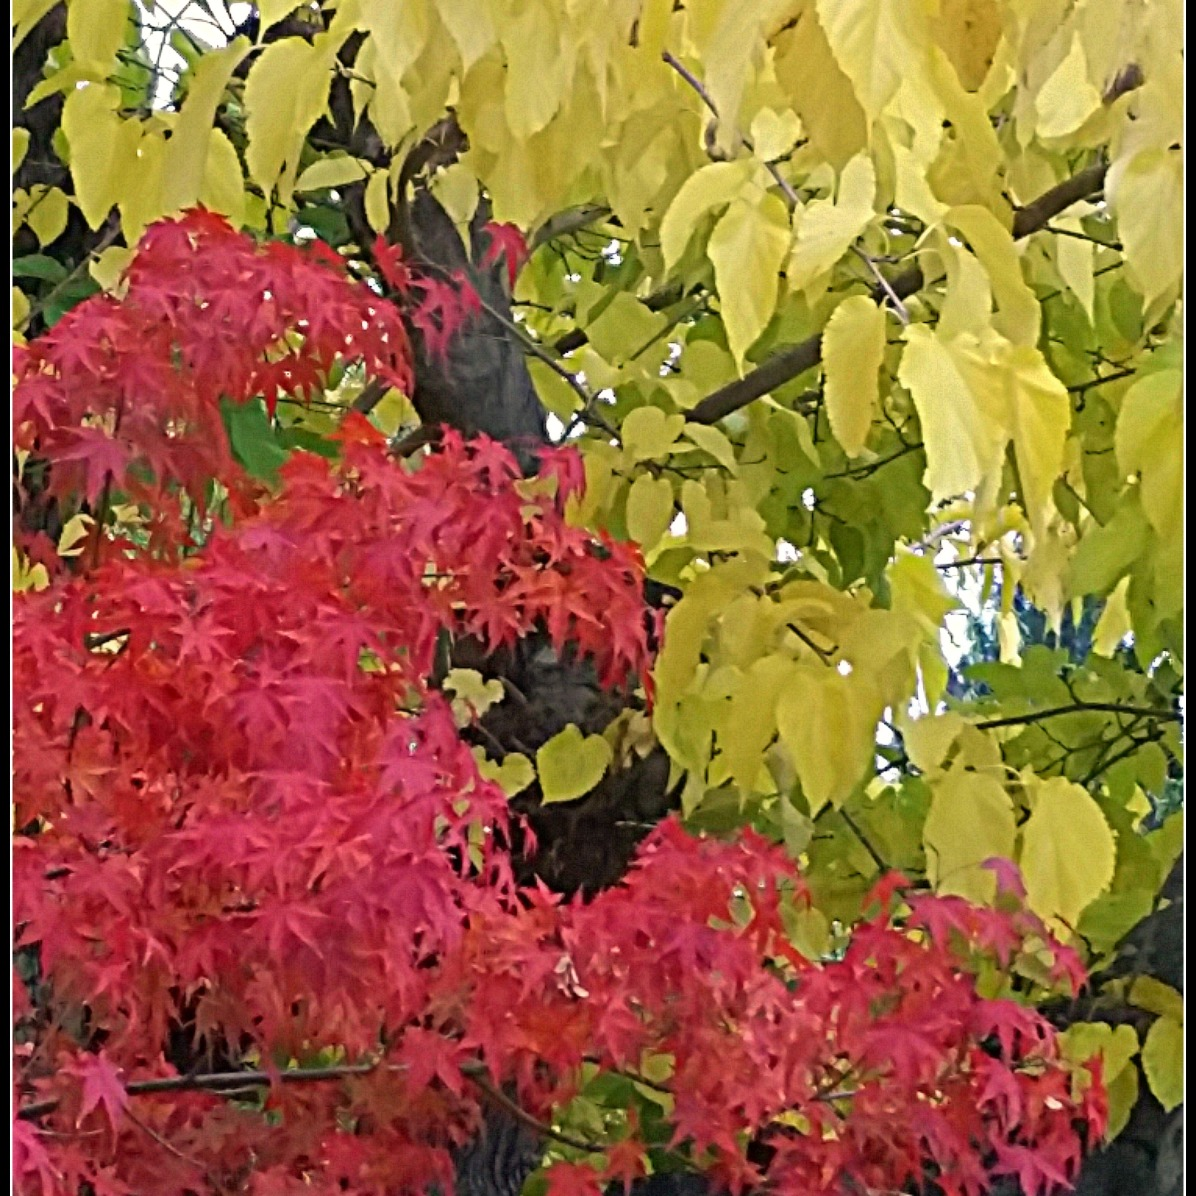 Full-on Autumn for Maple and Mulberry Trees